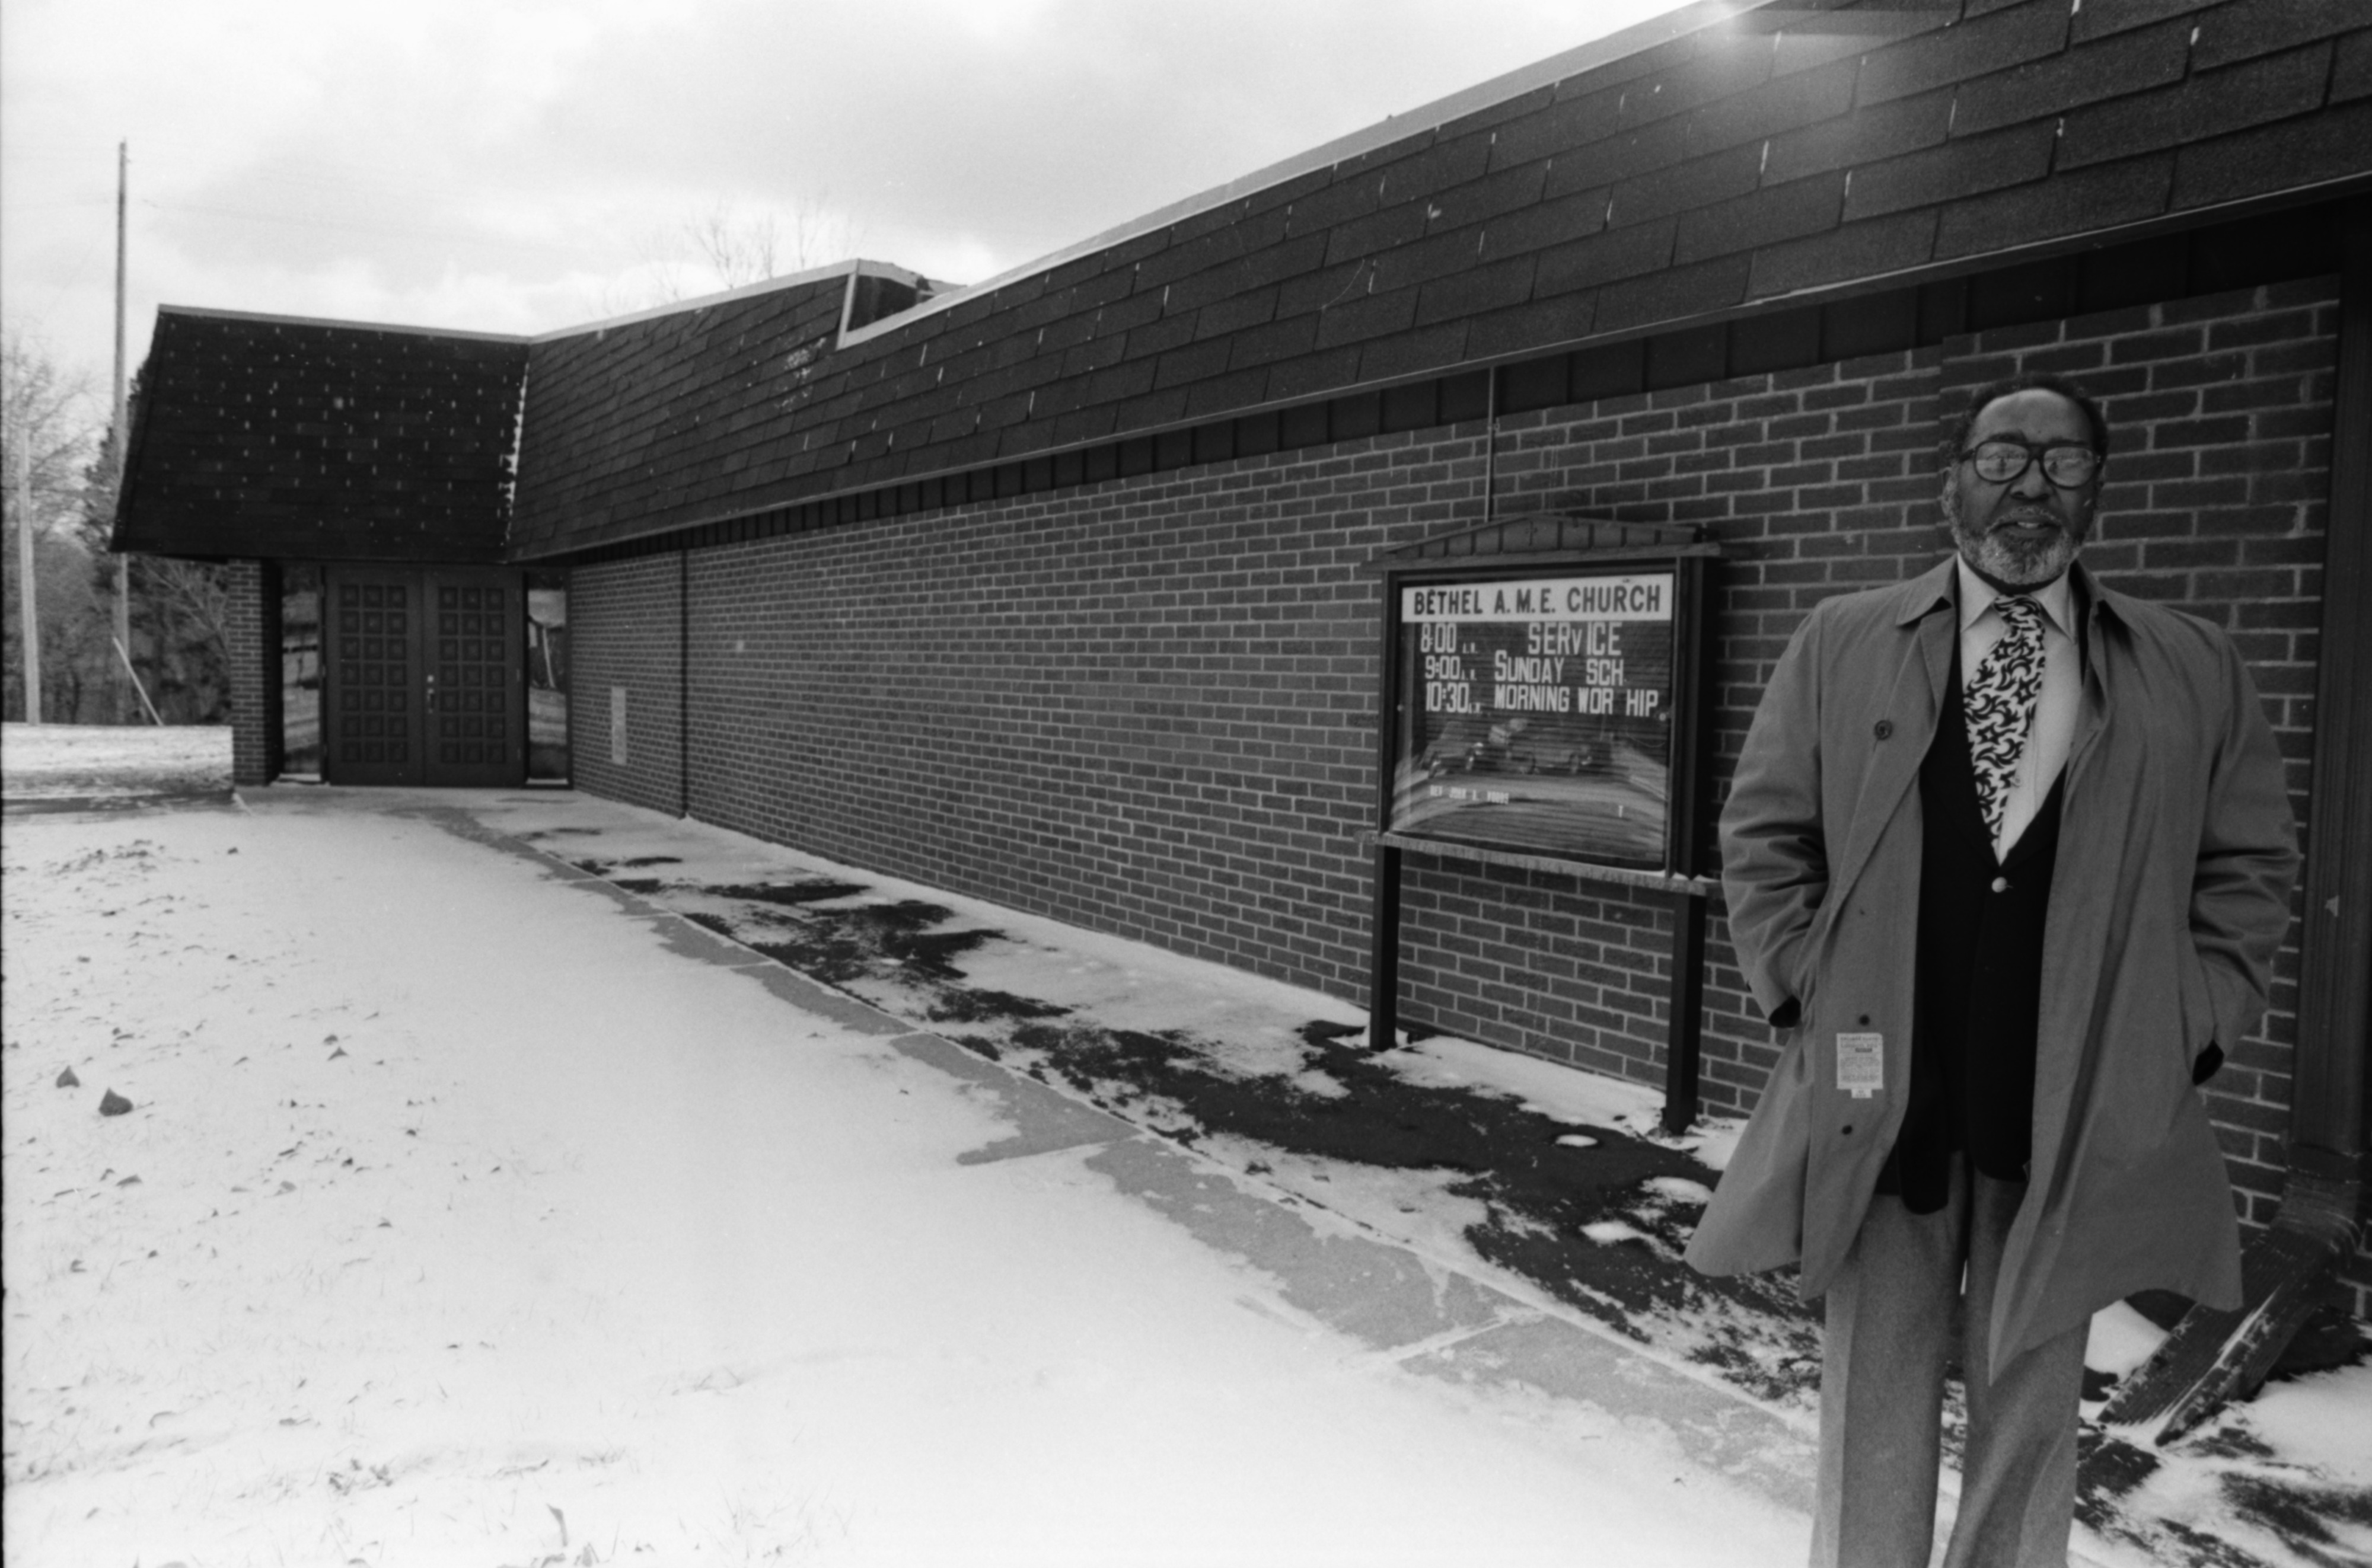 Richard D. Blake in front of Bethel A.M.E. Church, December 1979 image